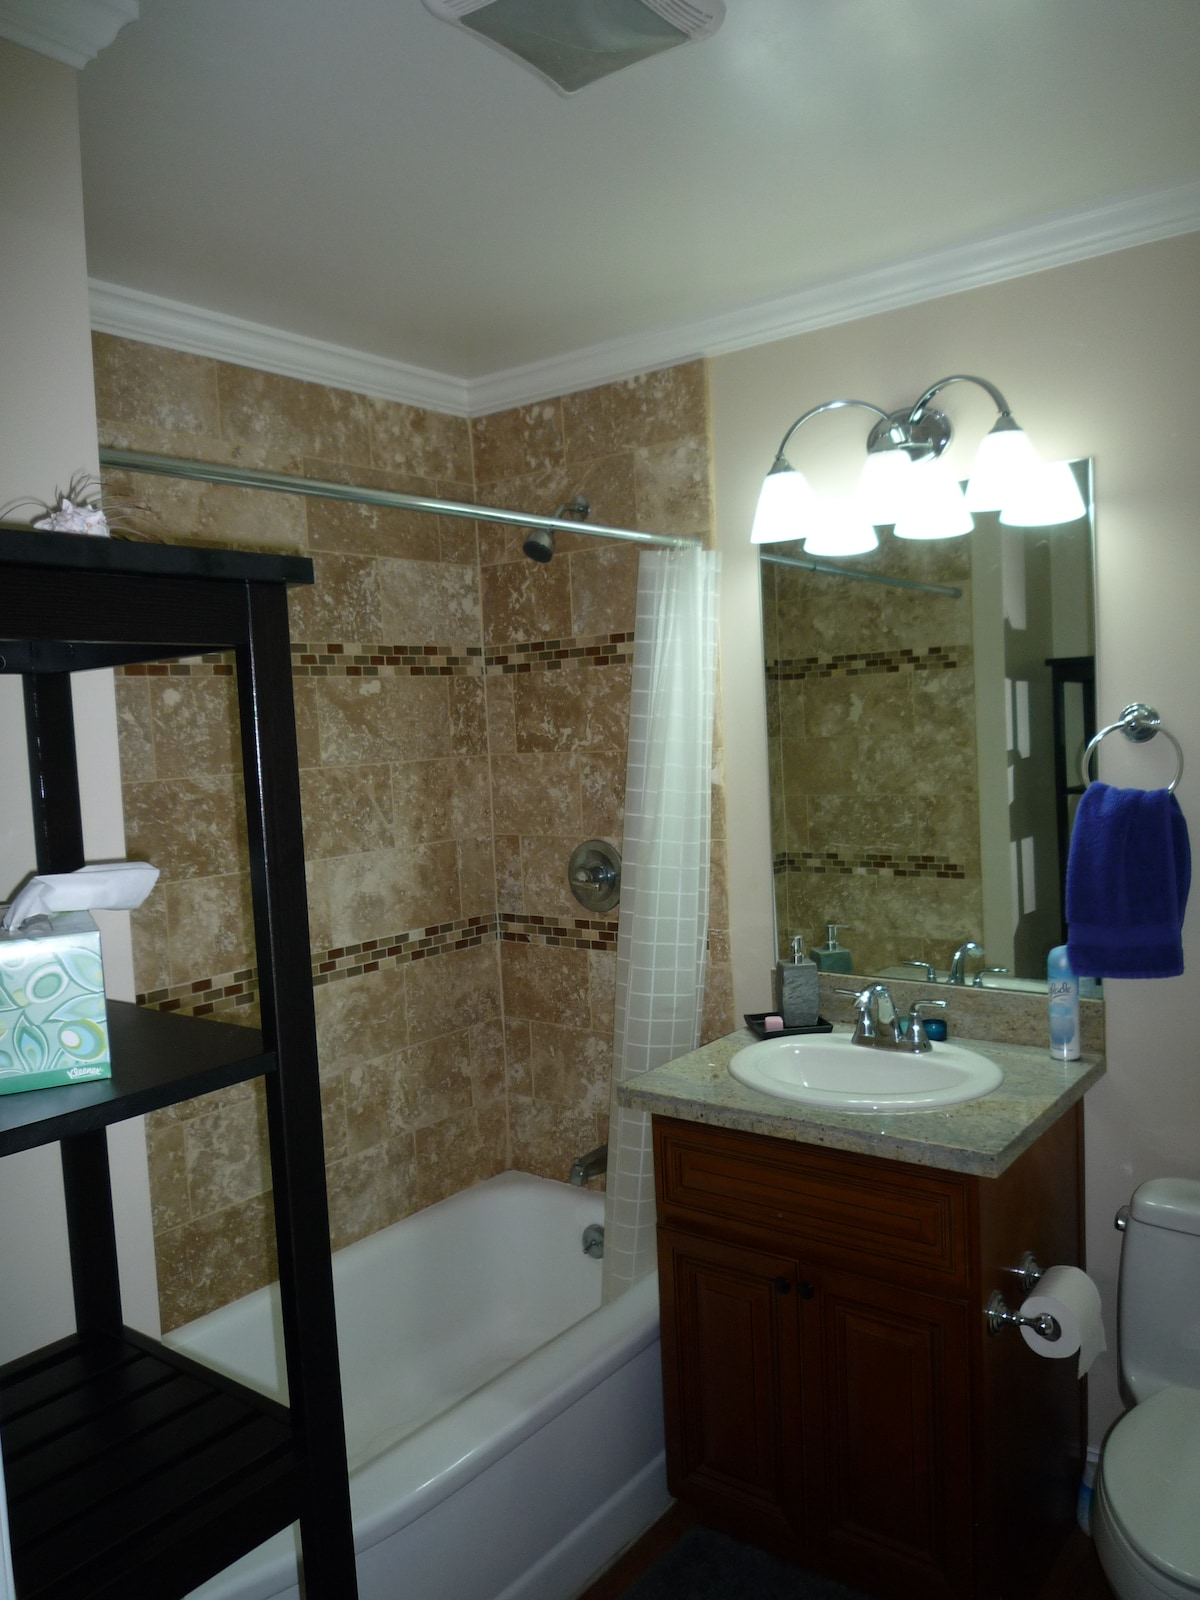 Guest bathroom, with bath tub and overhead shower head.